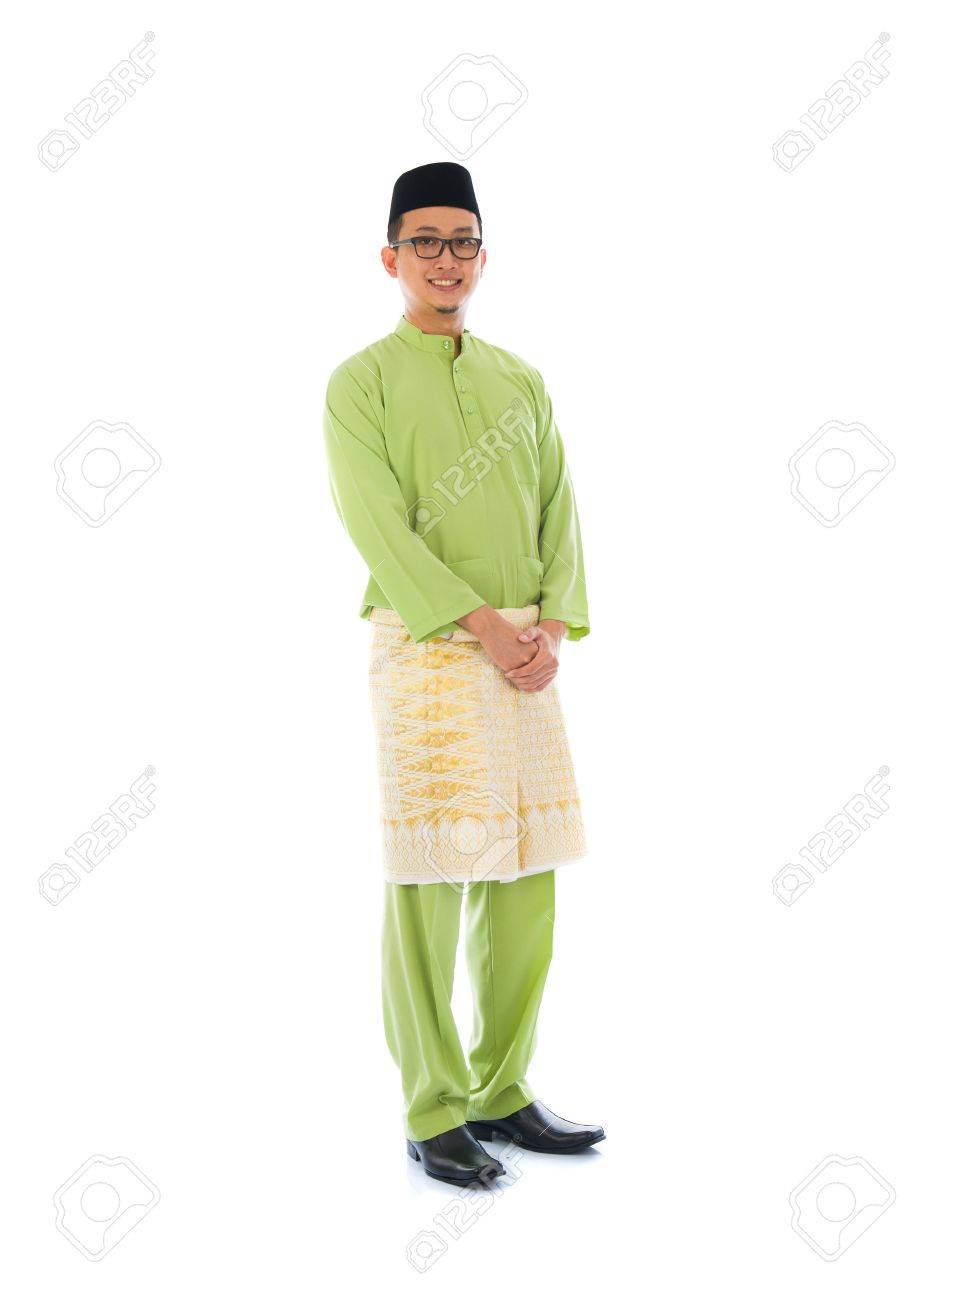 indonesian male during ramadan festival with isolated white background Stock Photo - 21373197